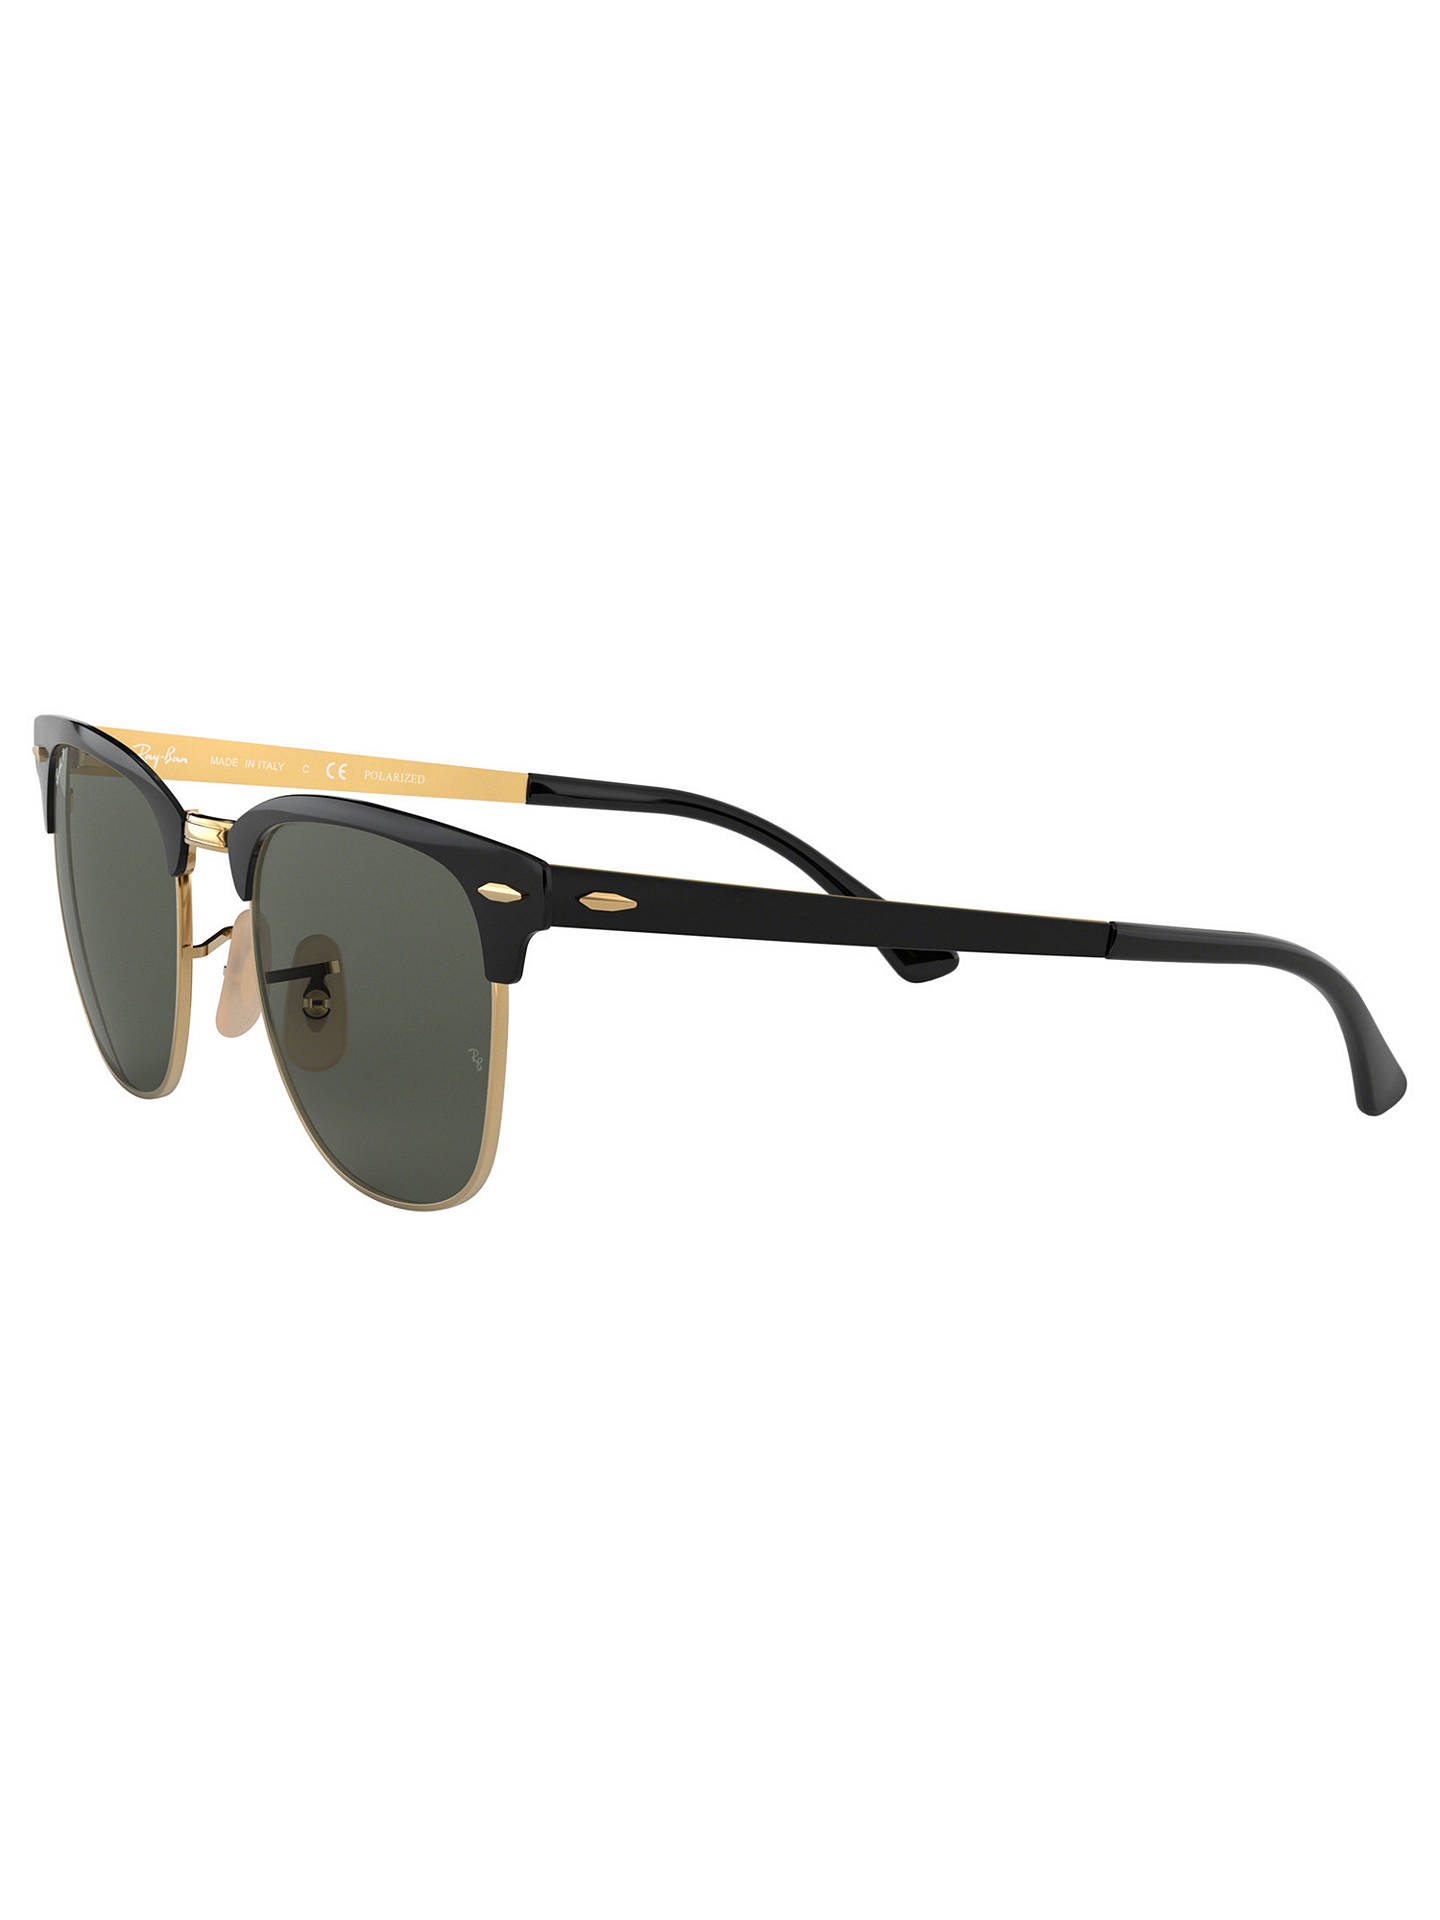 8505adfeb1 ... BuyRay-Ban RB3716 Polarised Unisex Square Sunglasses